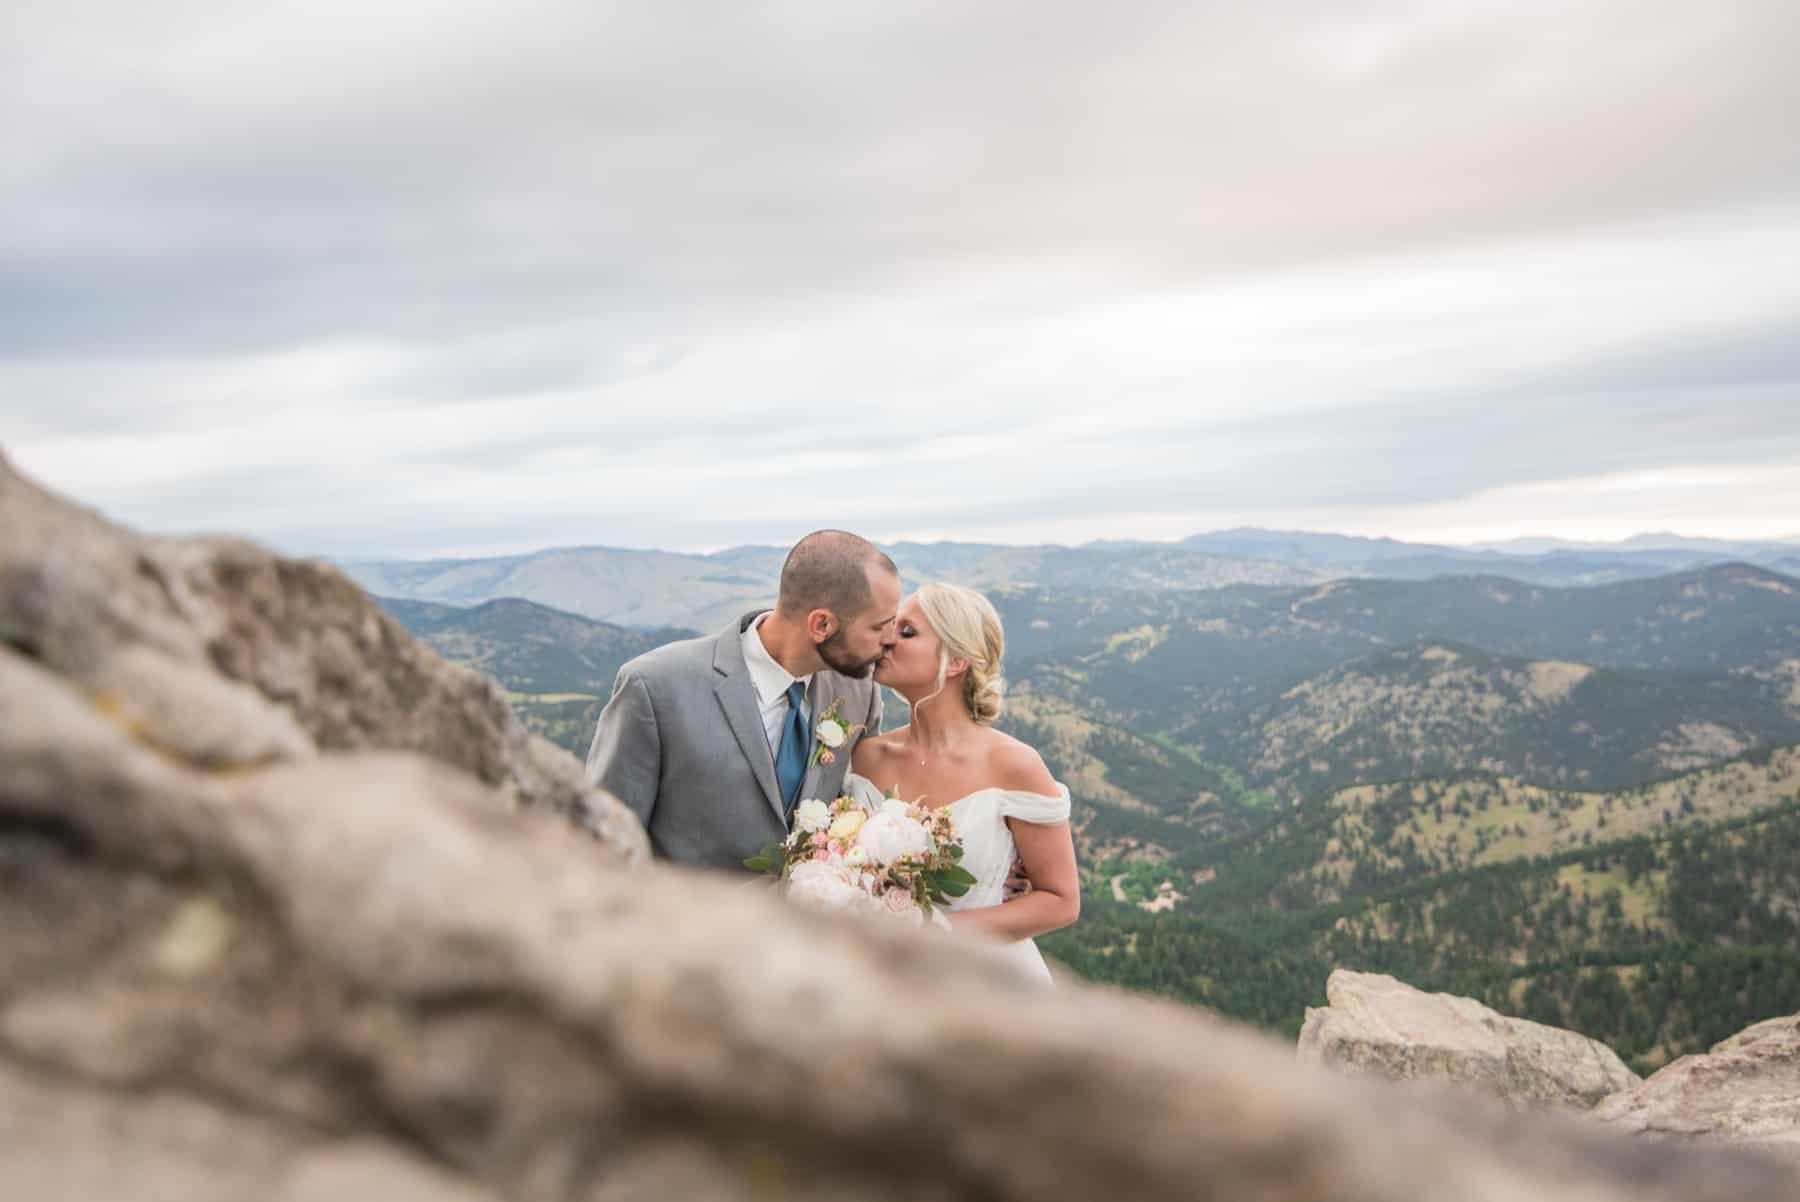 Kayla & Jason's Rocky Mountain Adventure Wedding in Boulder, Colorado